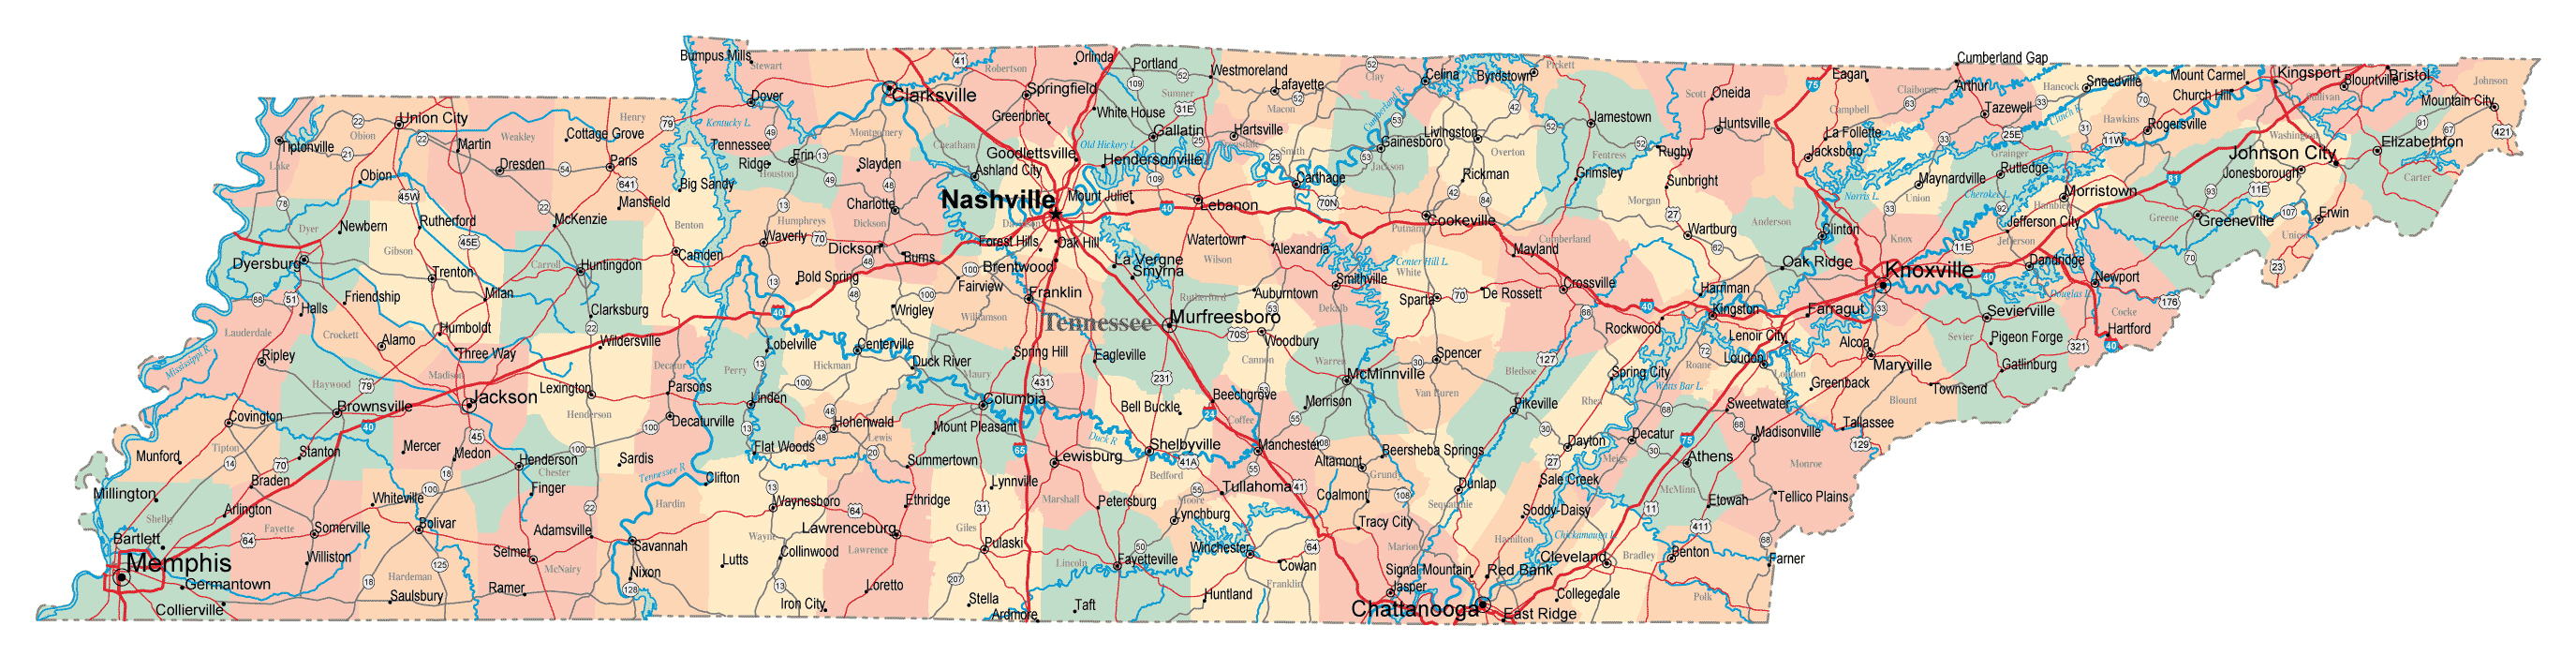 Tn State Map With Cities.Large Administrative Map Of Tennessee State With Roads Highways And